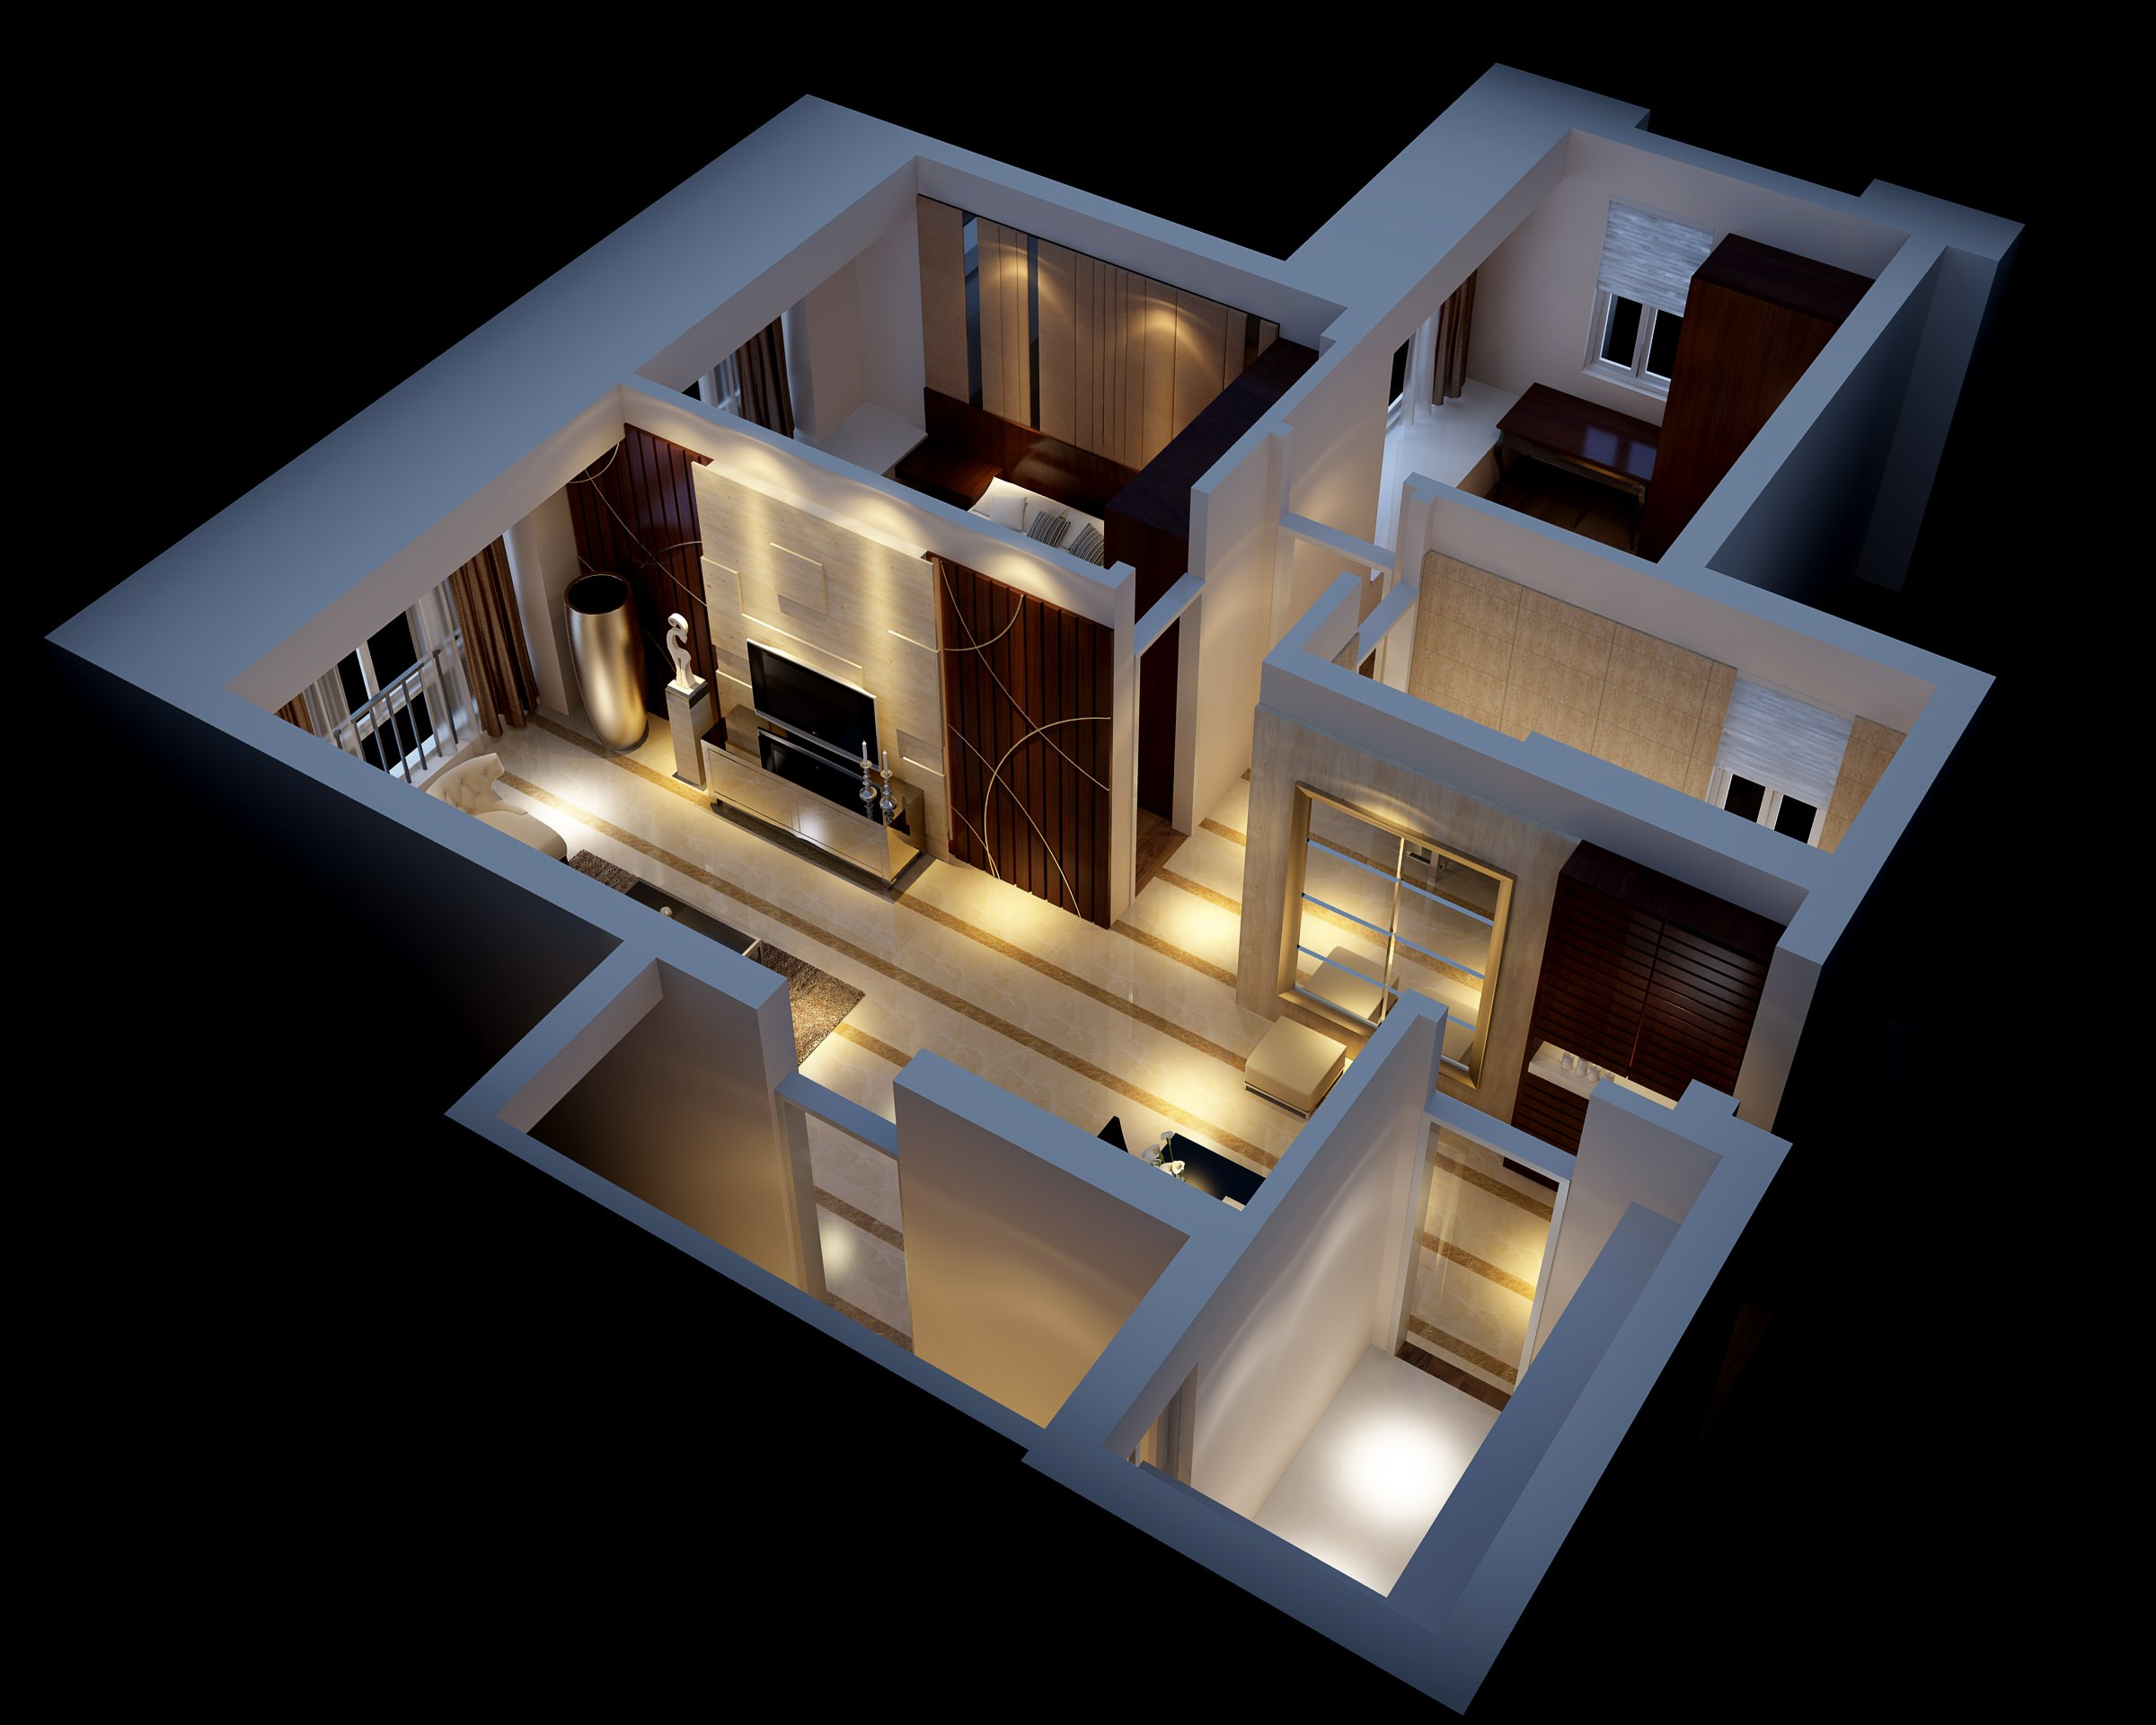 Modern house interior fully furnished 3d model max for 3d decoration models